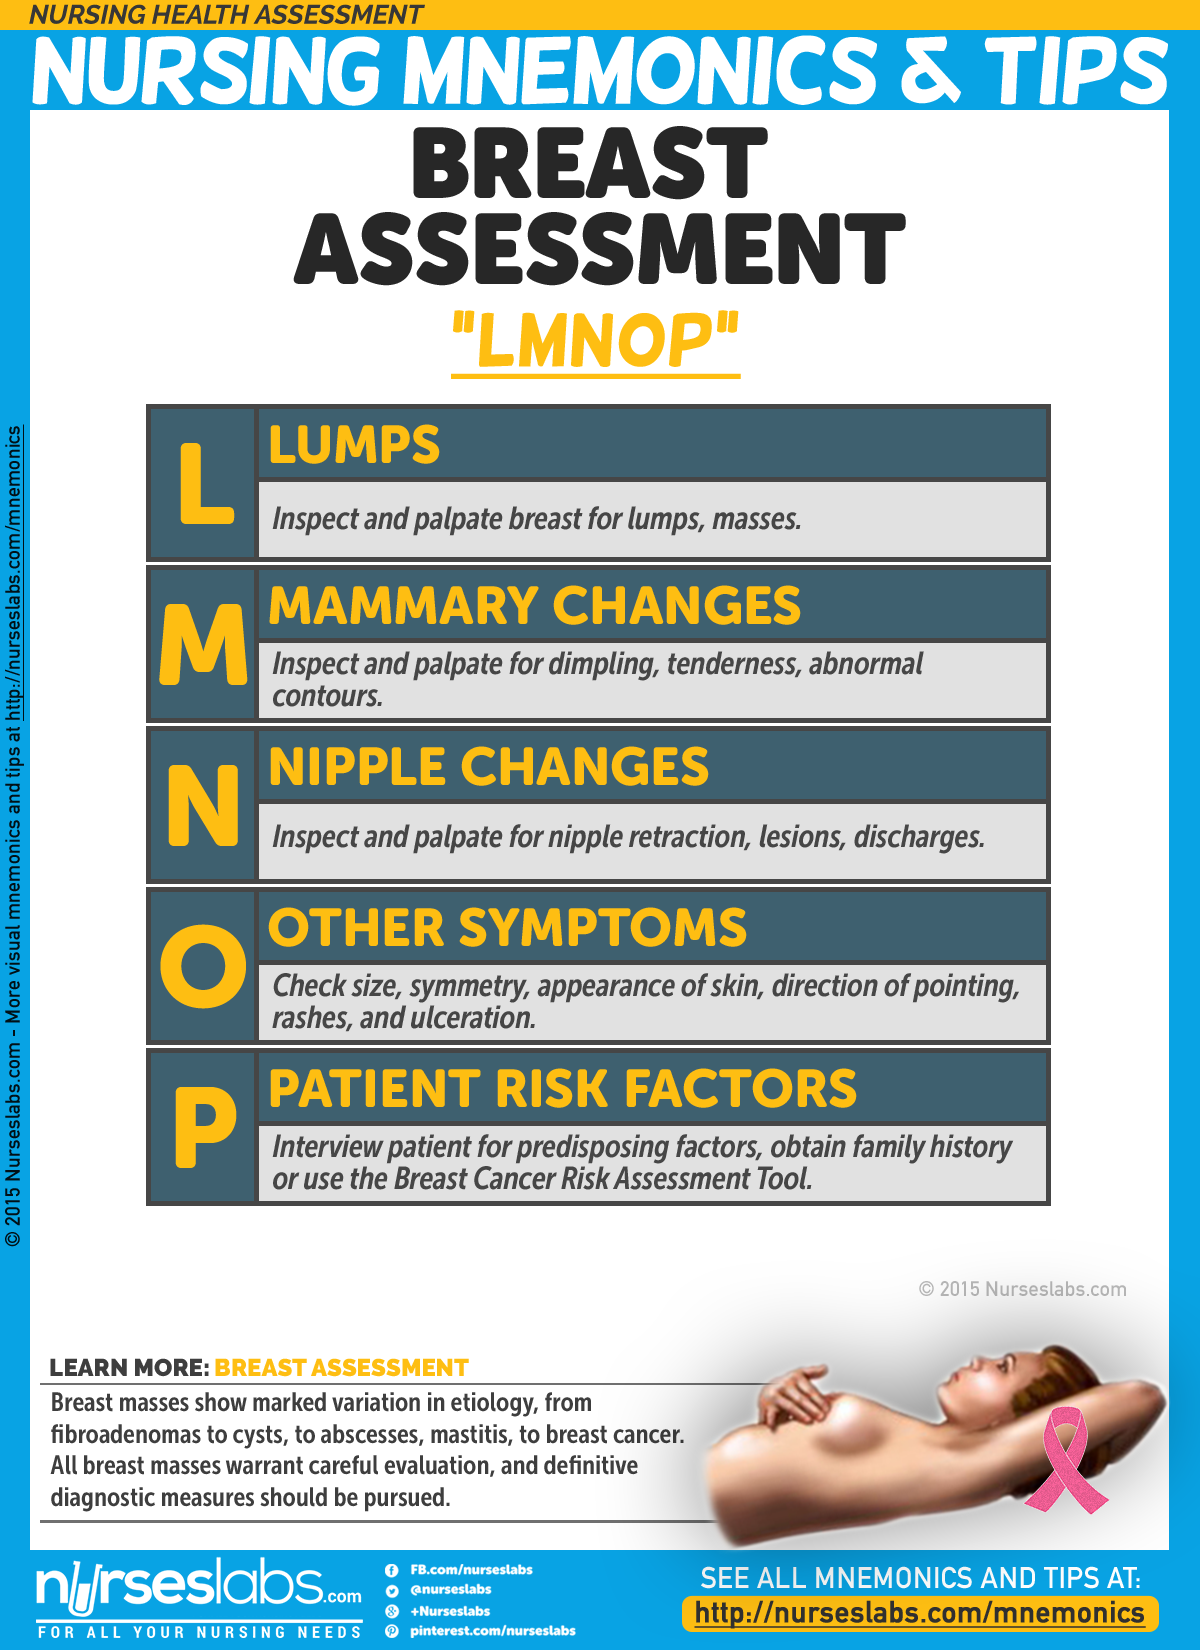 Nursing health assessment mnemonics tips pinterest for Chemotherapy order templates